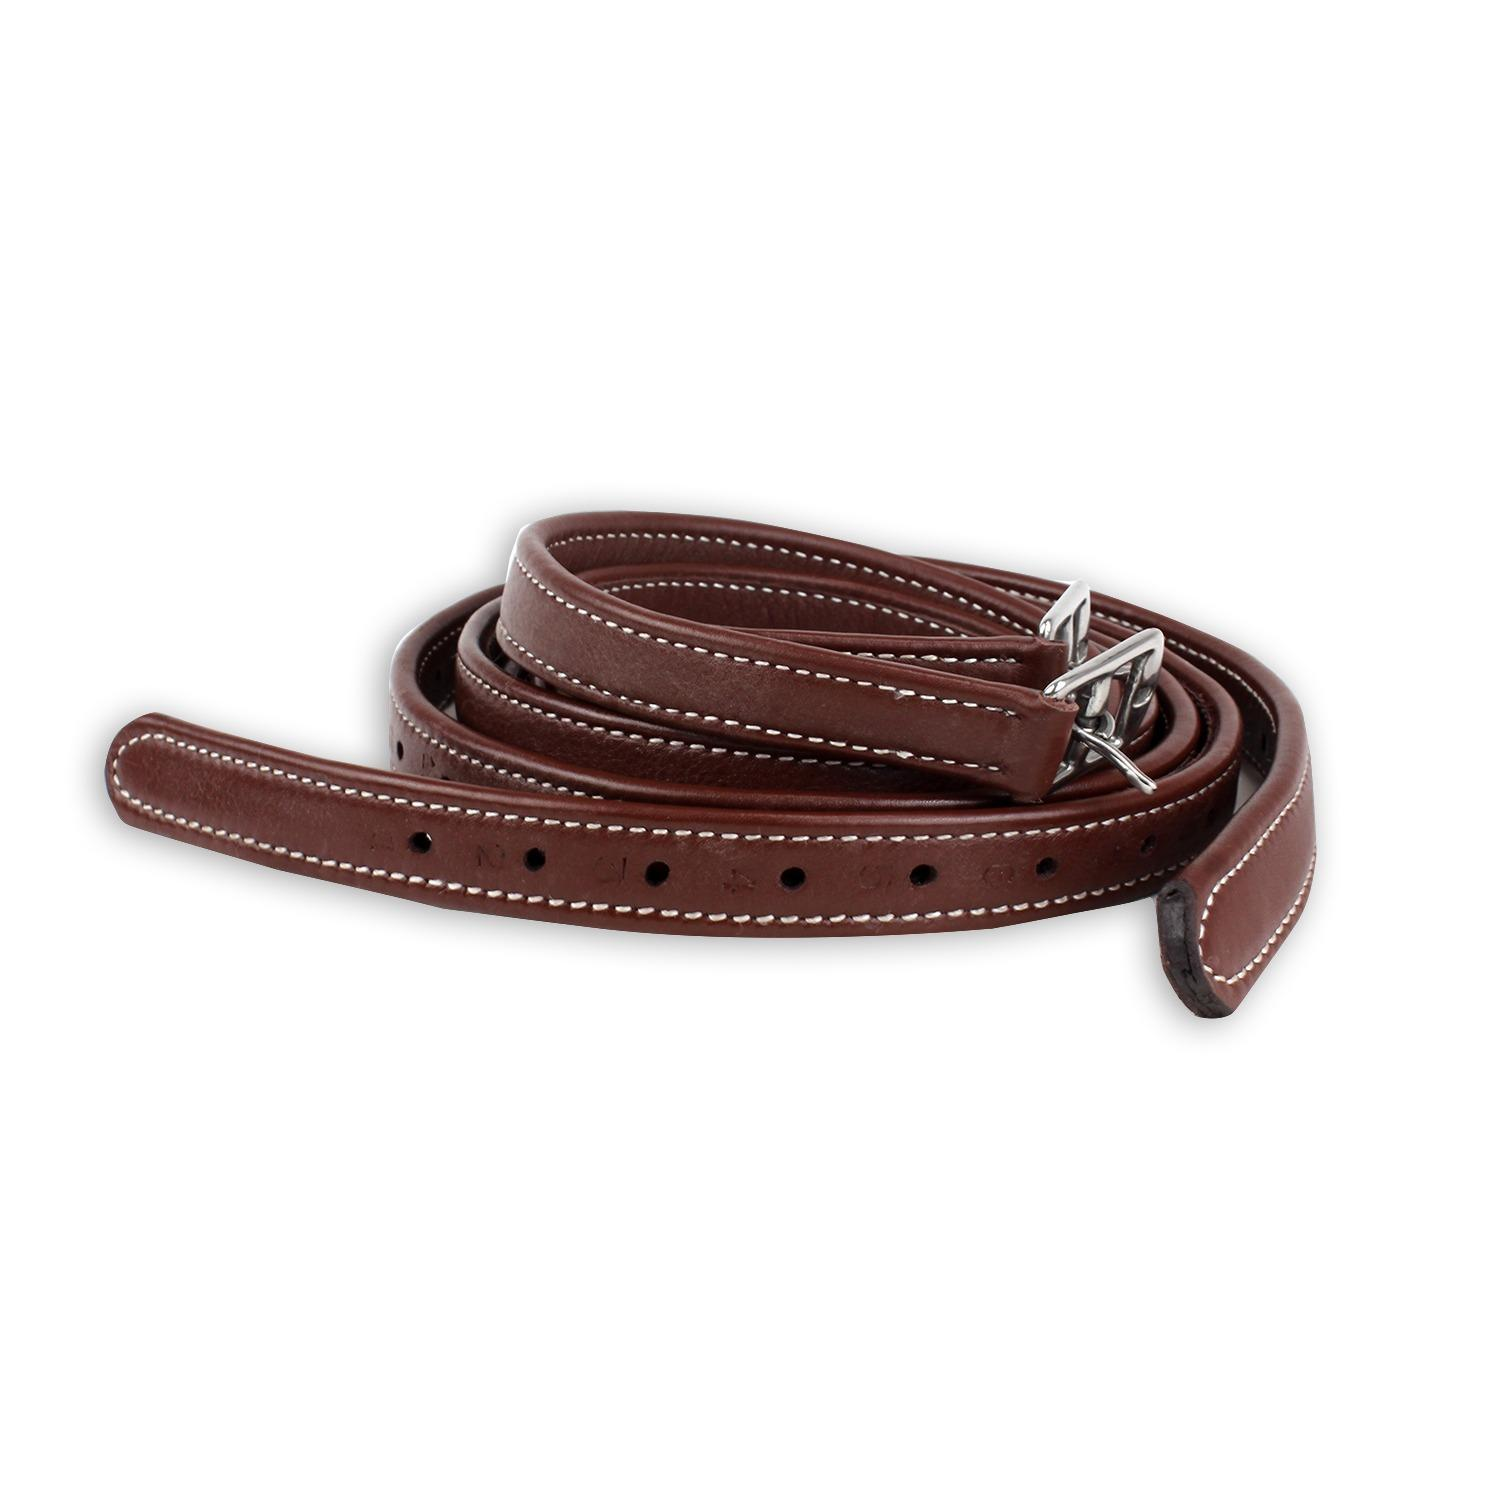 Luxury Stirrup Leathers Chestnut